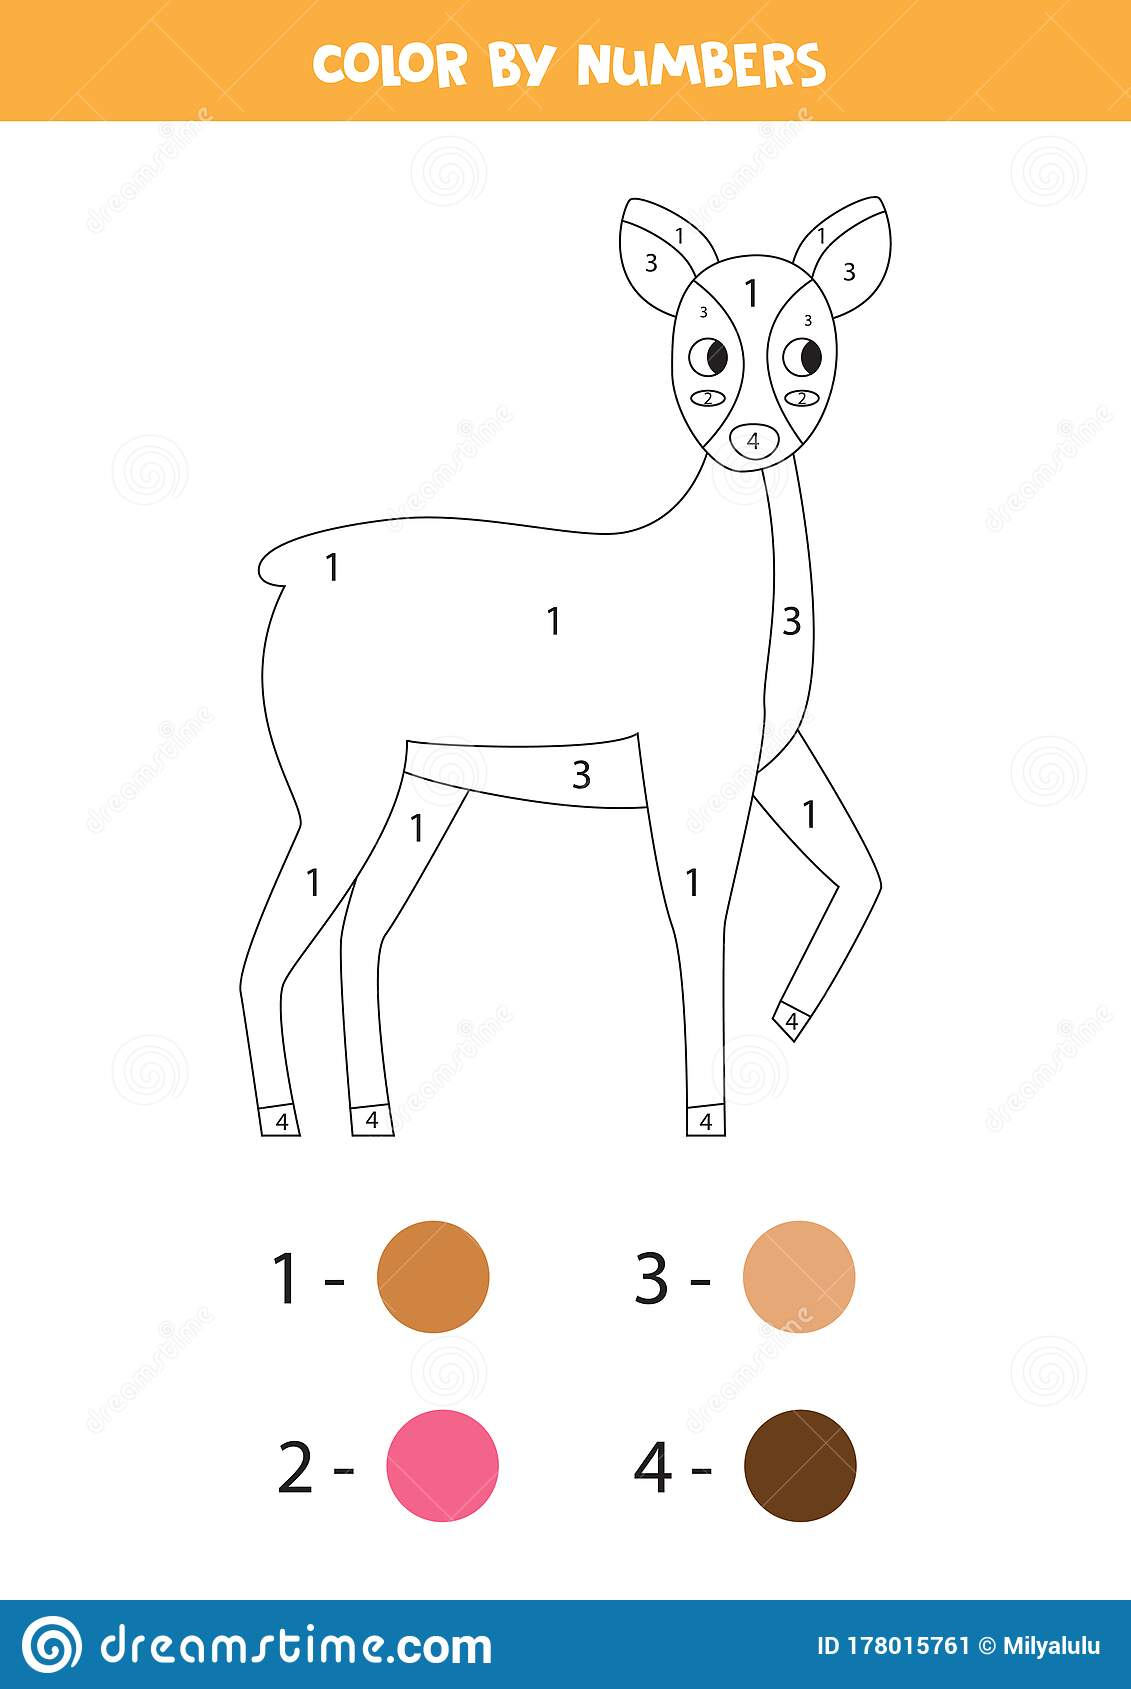 Coloring Page With Cute Cartoon Roe Deer Color By Numbers